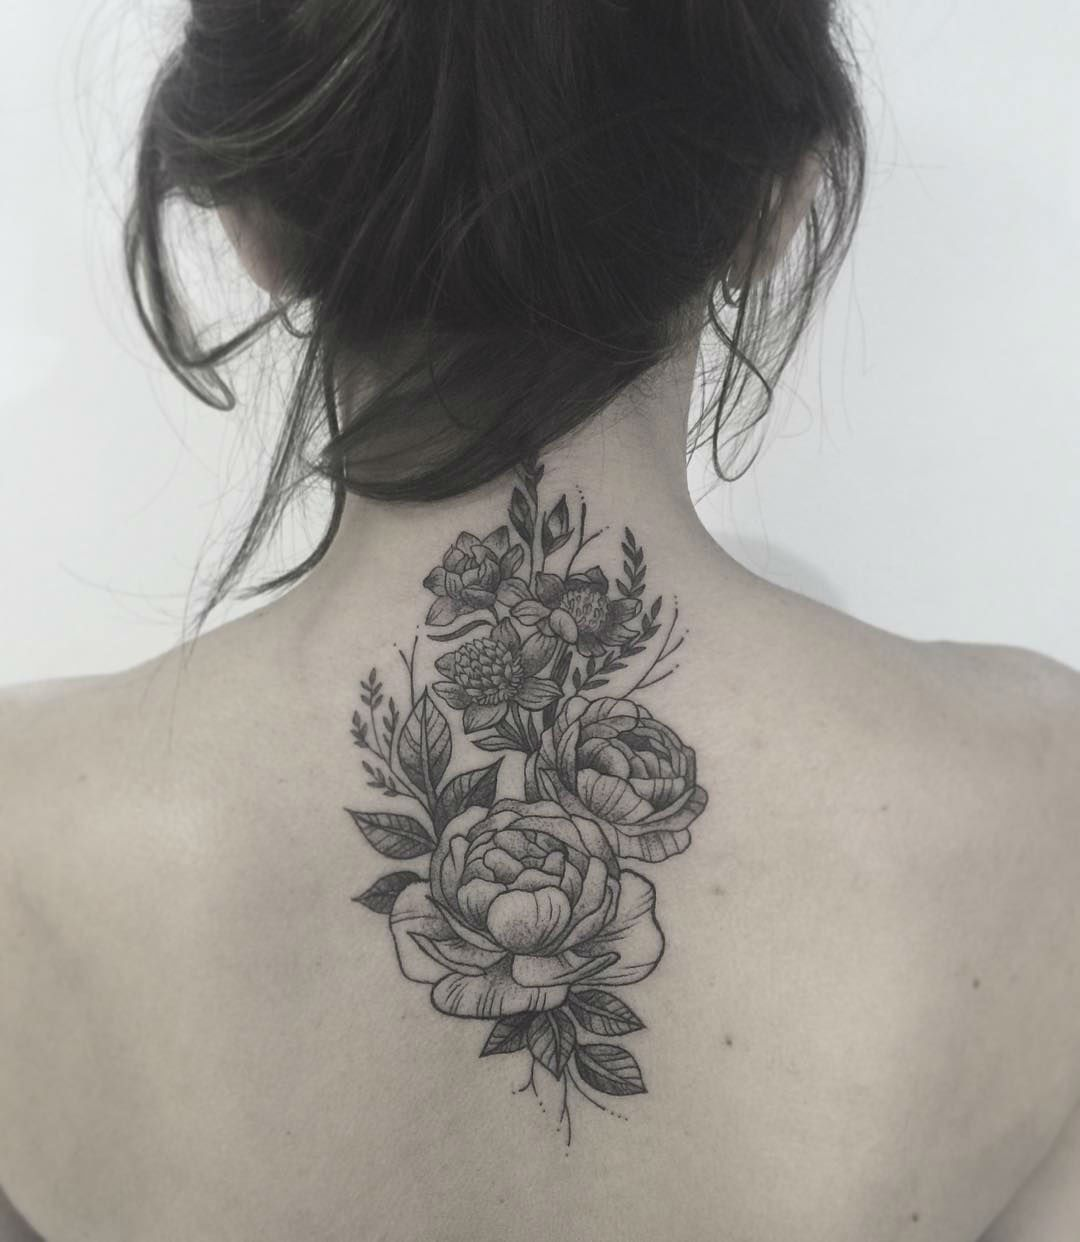 Gabriela Arzabe Creates Stunning Botanical Tattoos Neck Tattoo Cover Up Floral Back Tattoos Feminine Back Tattoos